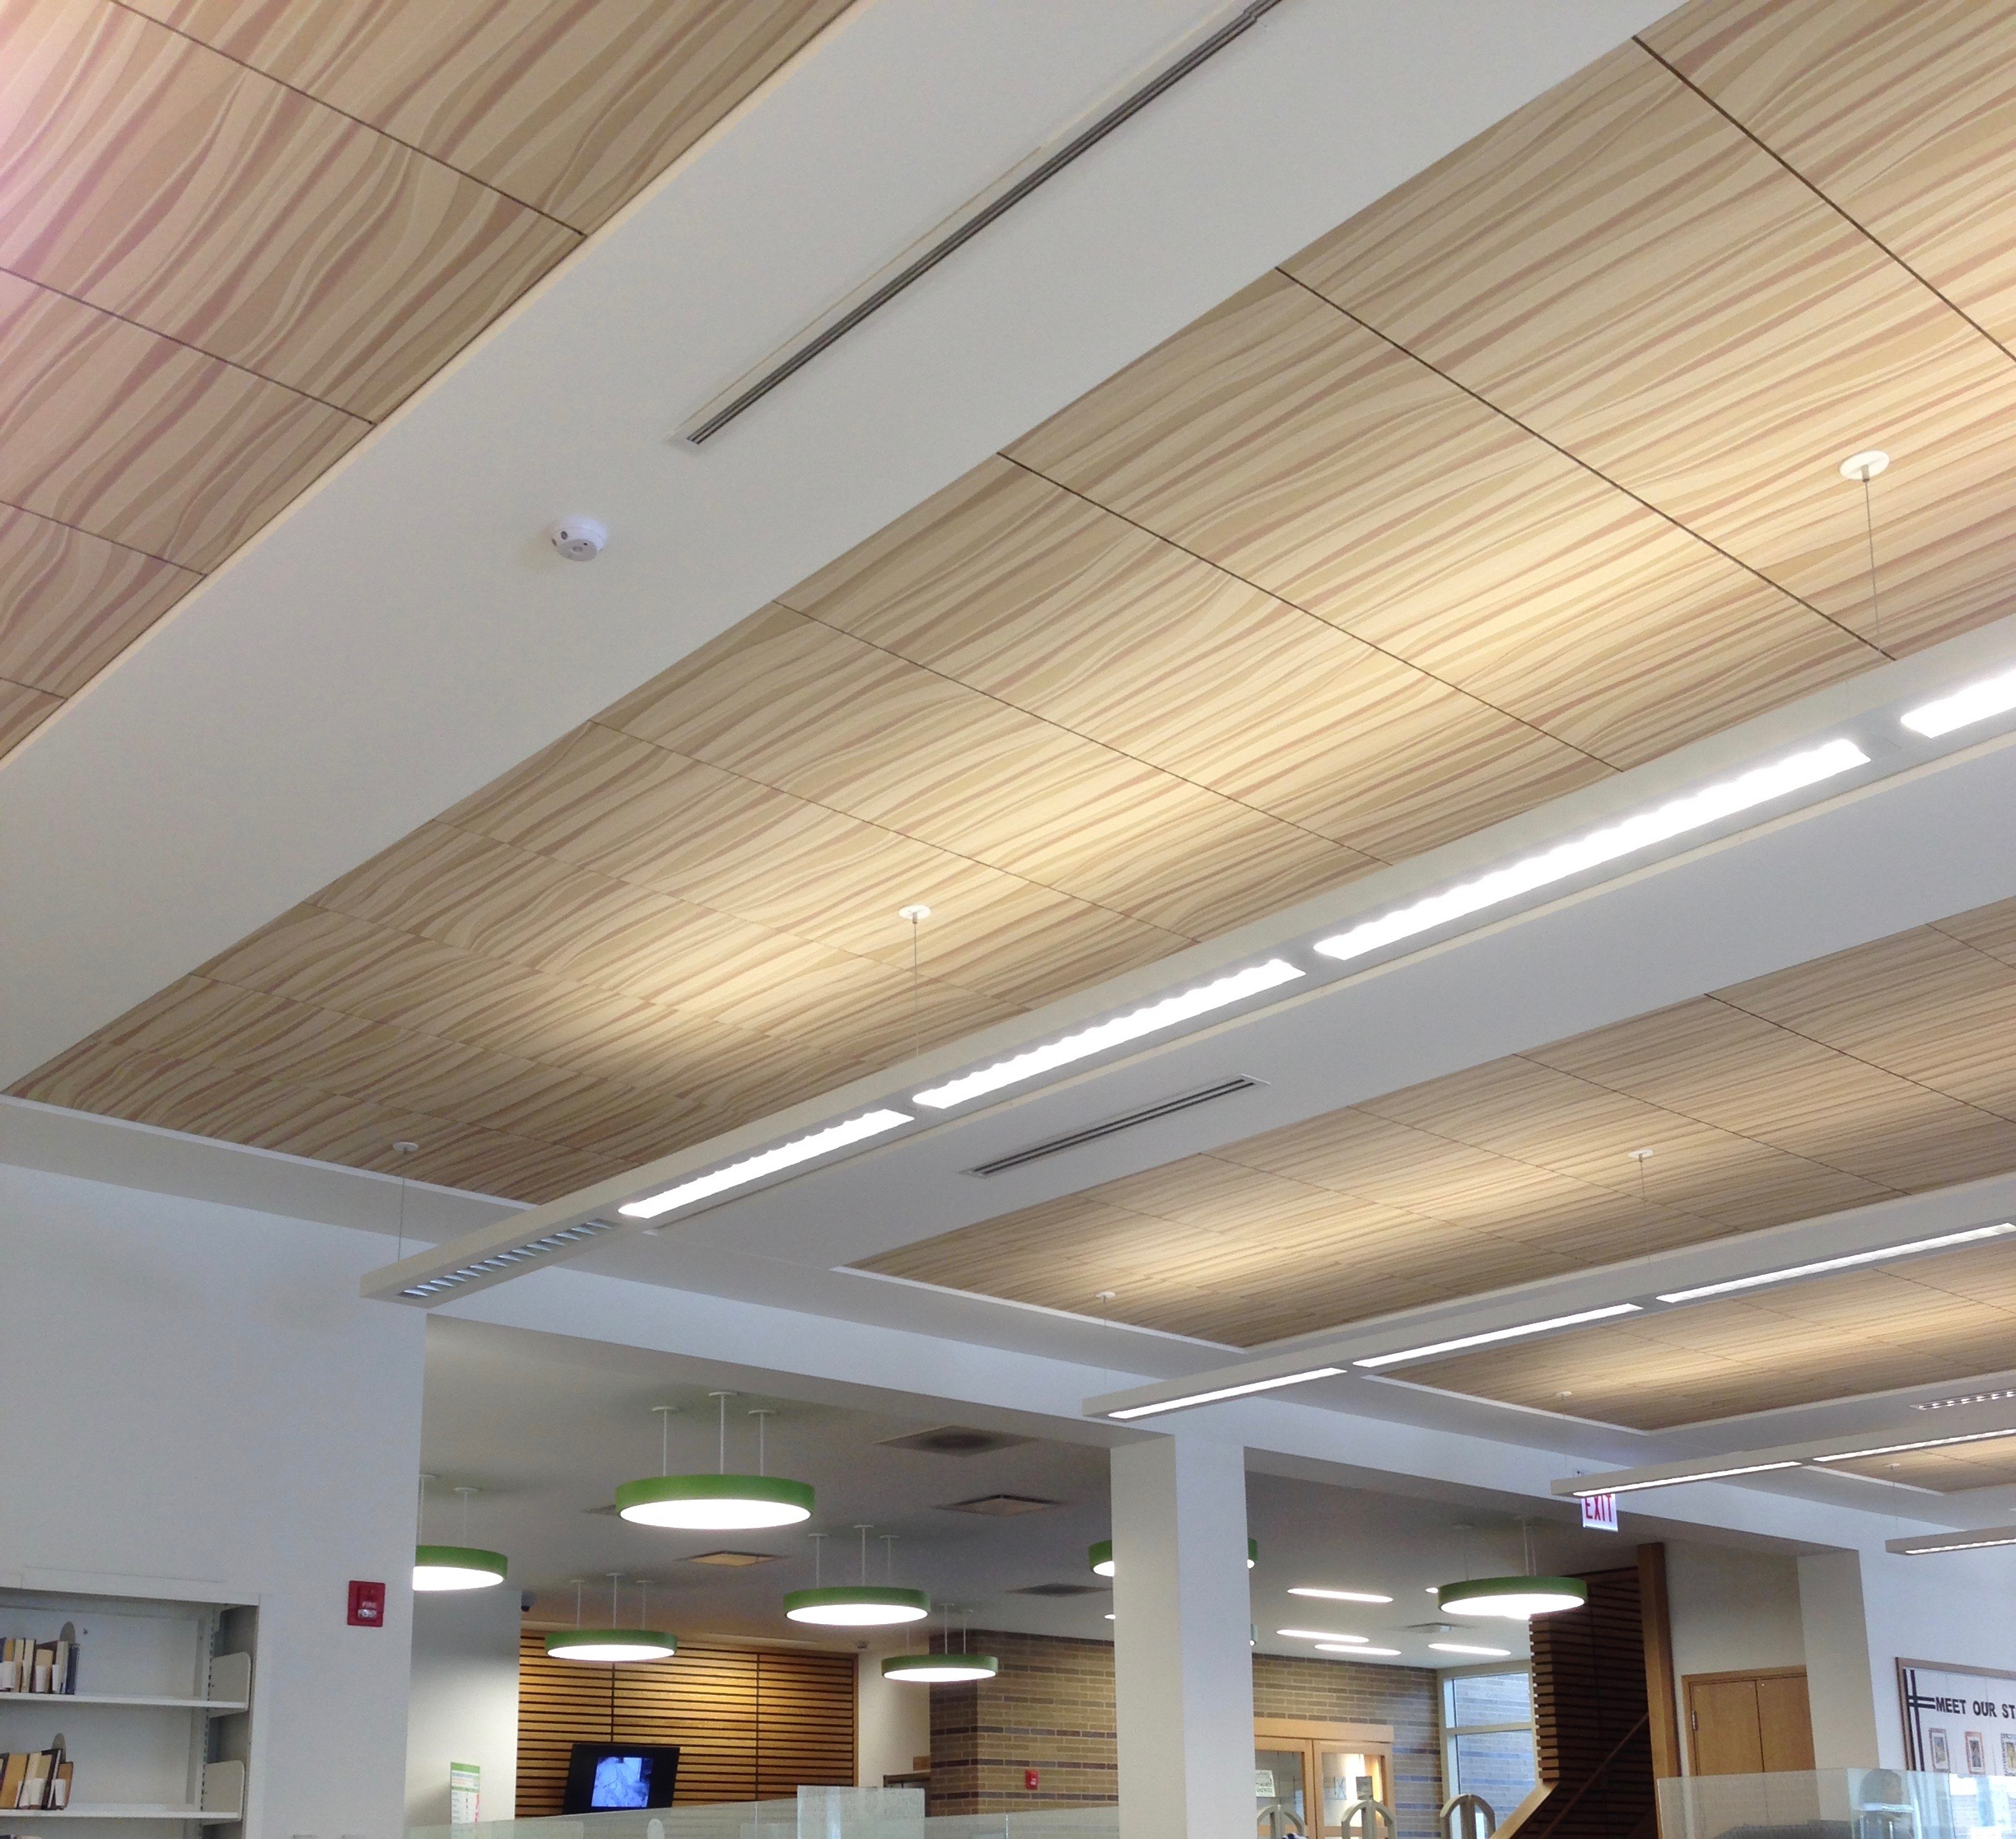 Techstyle Ceiling By Hunter Douglas Used Arrangement With All Rights Reserved